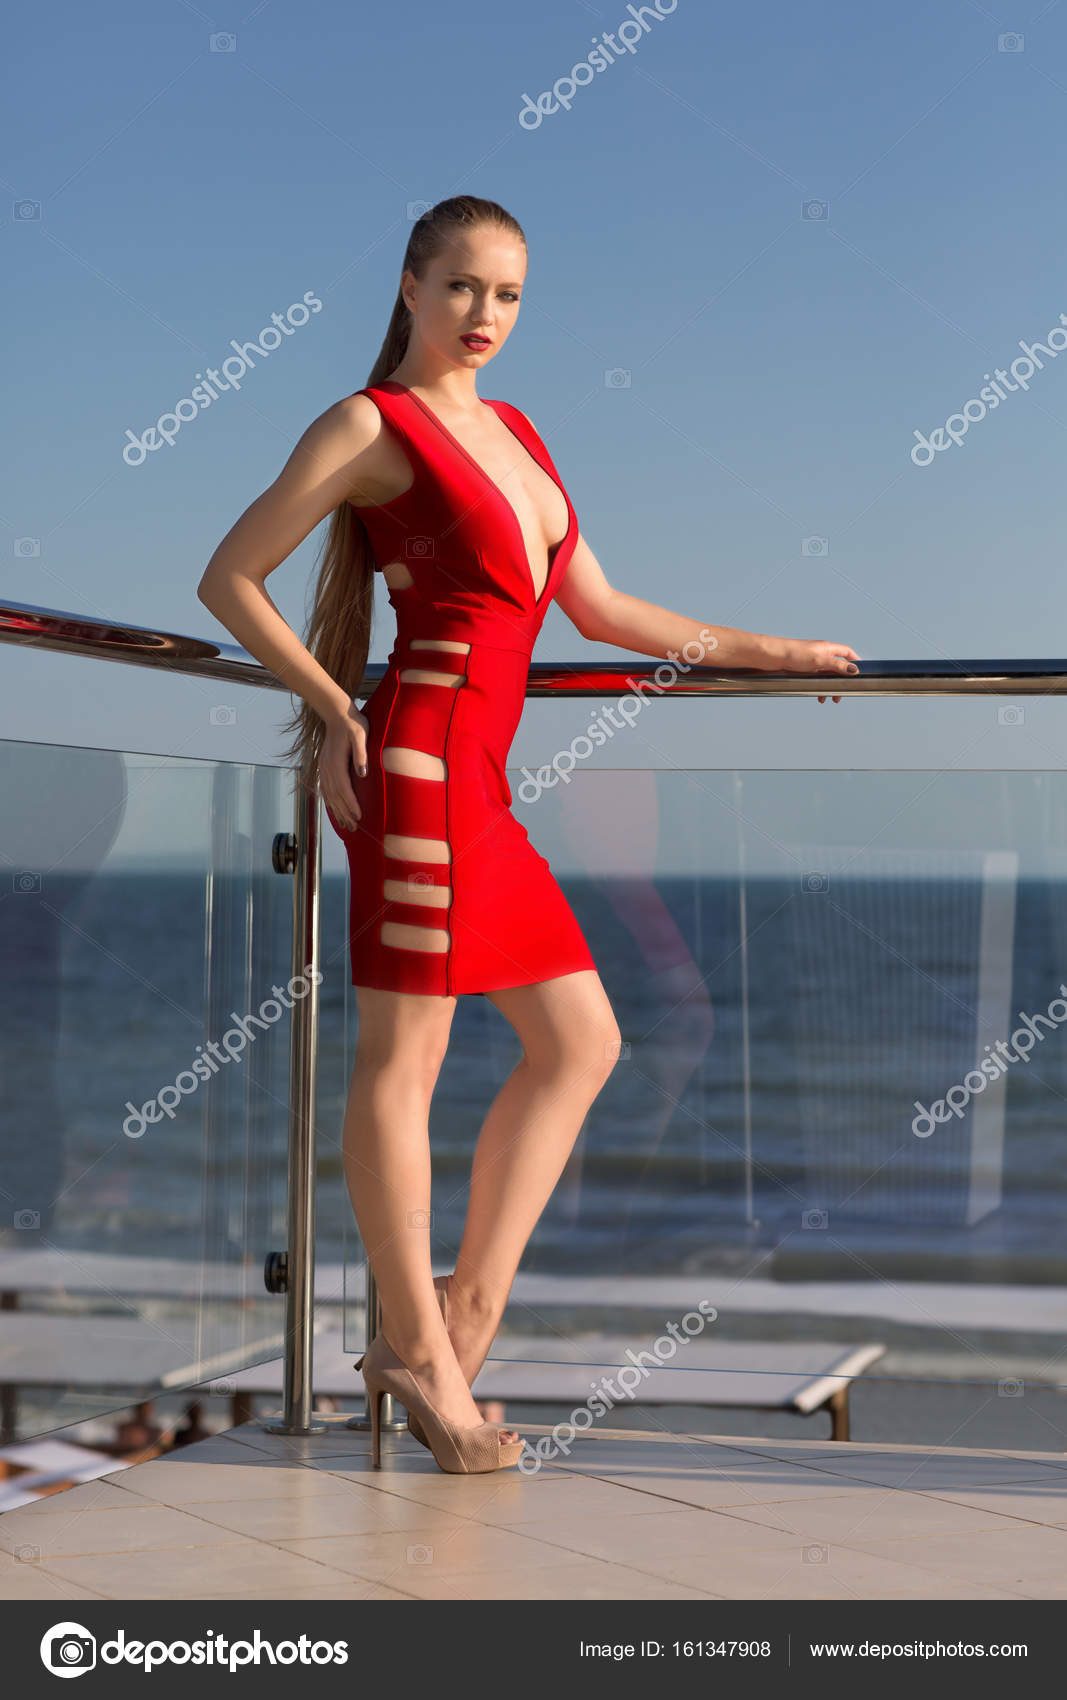 a sexy woman in a stunning red dress and high heels on a hotel's